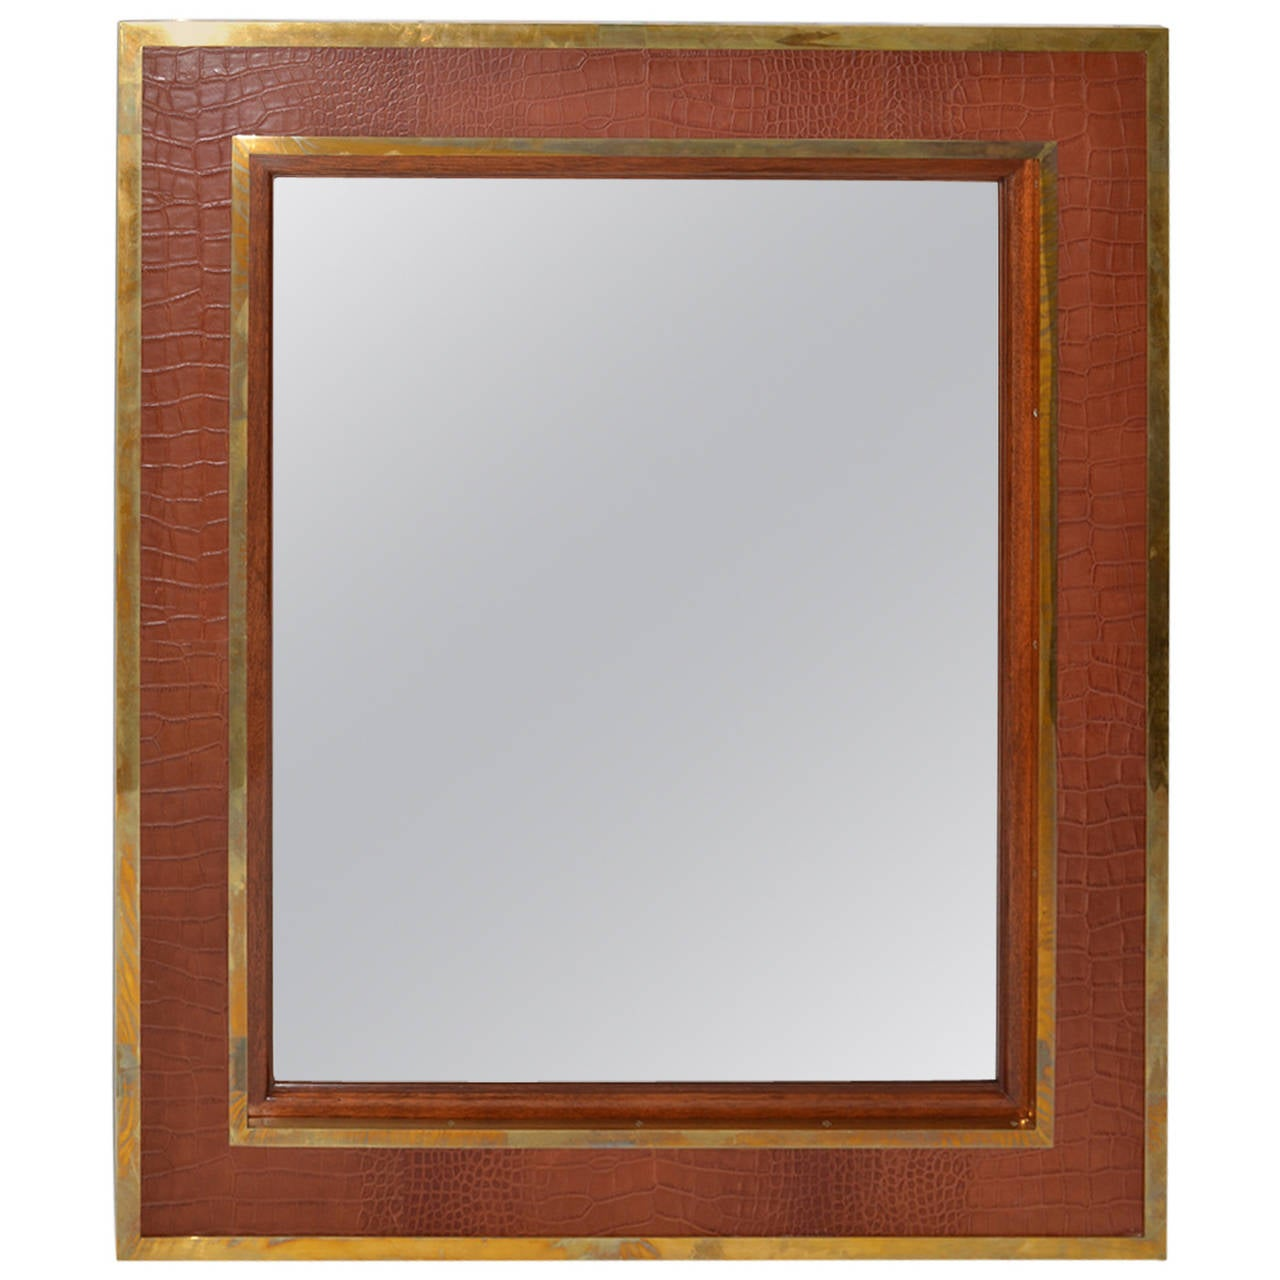 Search Results Ralph Lauren Metal Mirrors Made By Henredon